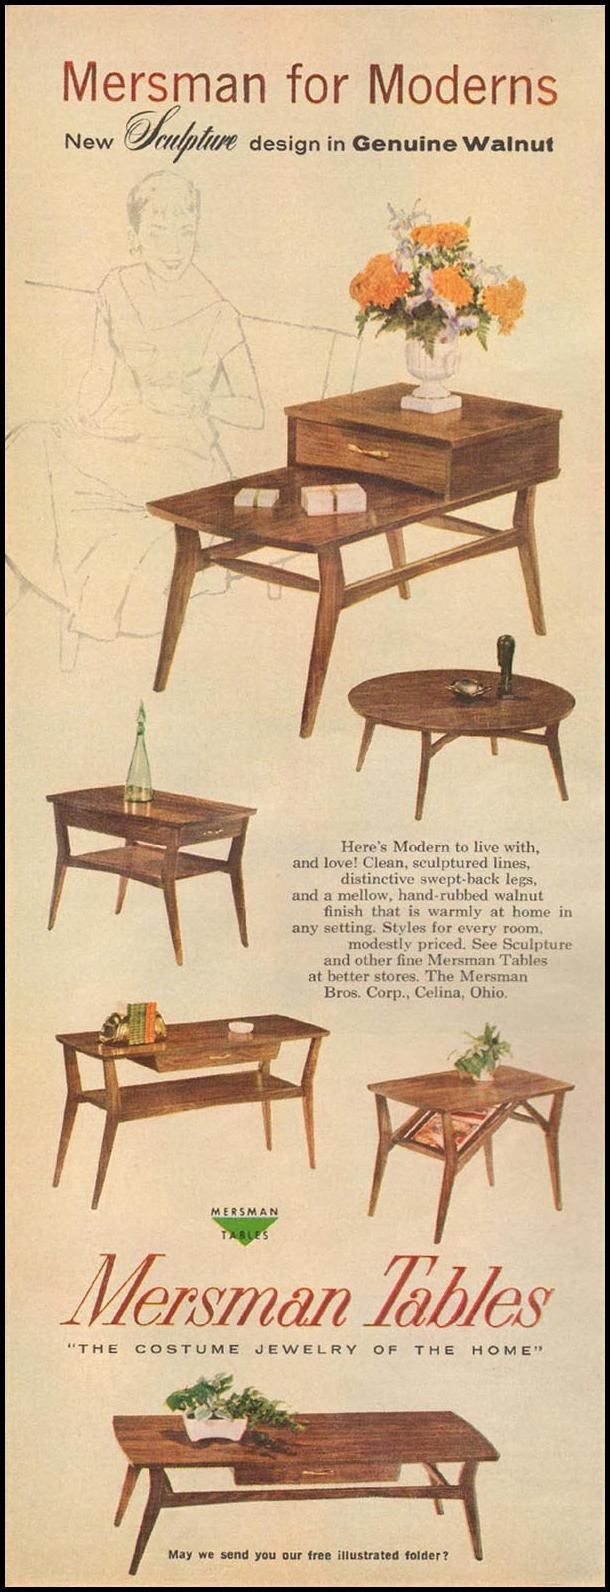 Mersman Tables Better Homes And Gardens 03 01 1960 P 116 Googie